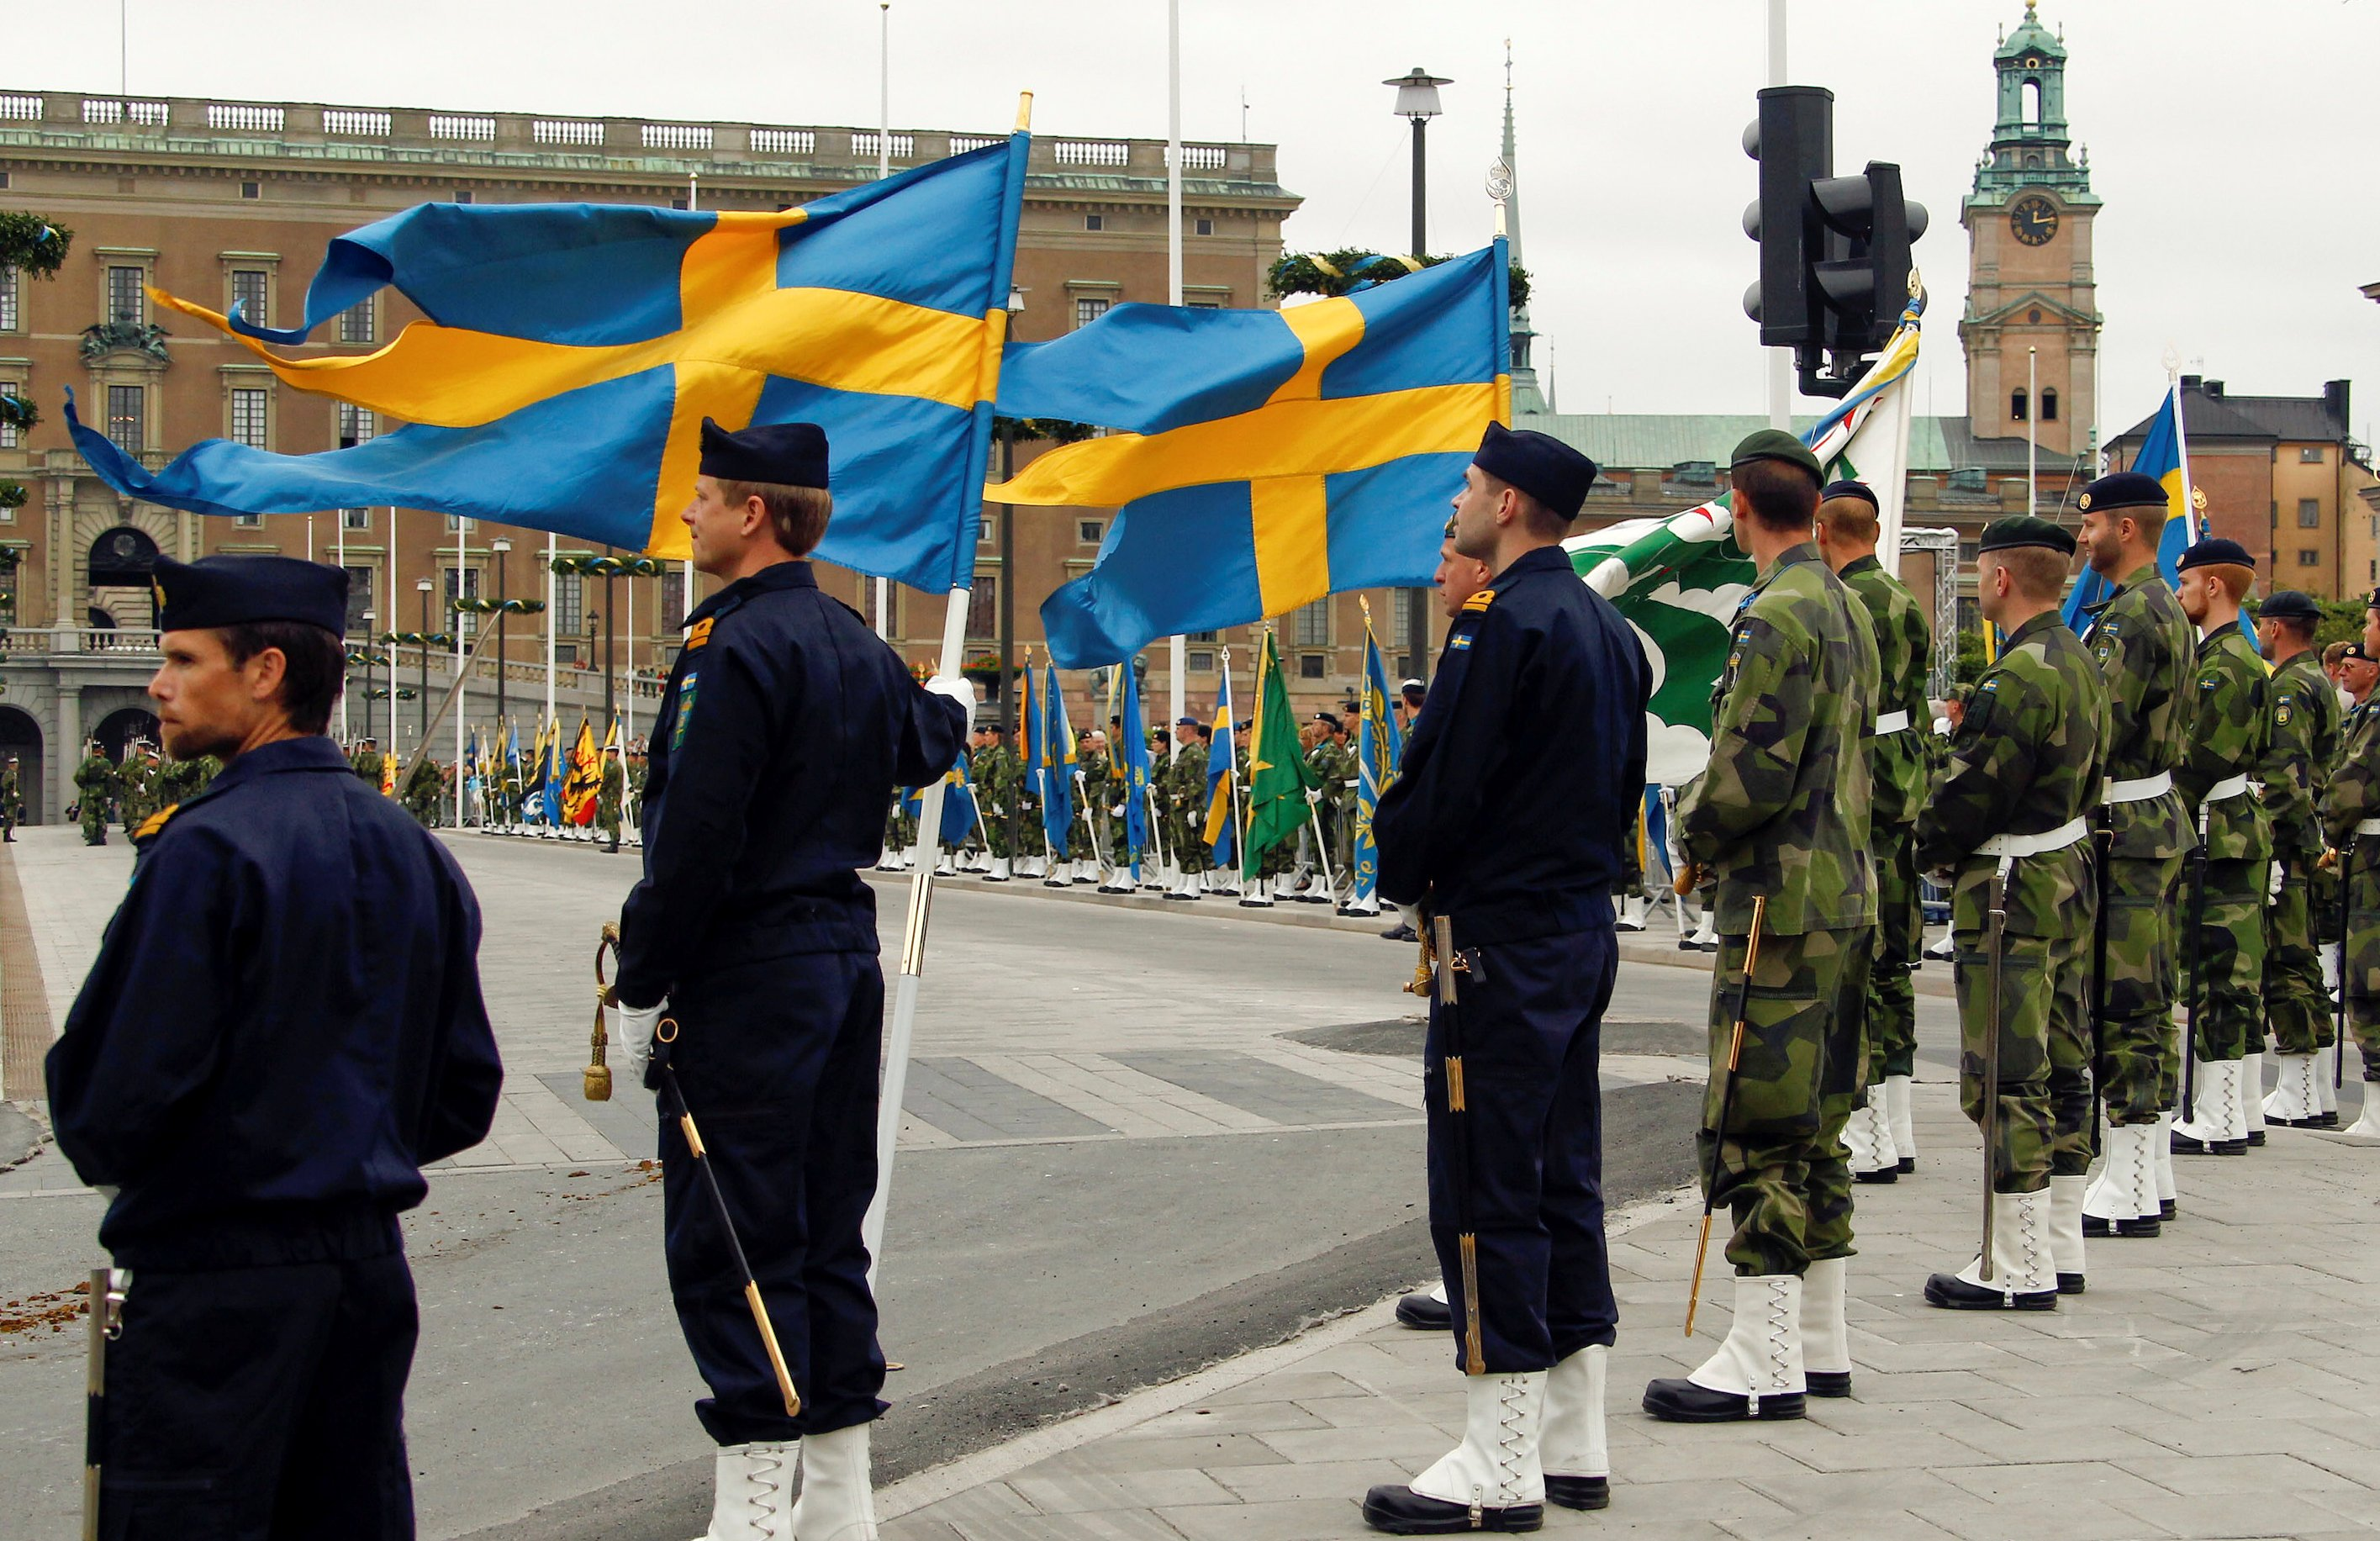 FILE PHOTO: Swedish armed forces soldiers attend a rehearsal  in front of the Royal Palace in Stockholm, Sweden June 18, 2010. REUTERS/Fabrizio Bensch/File Photo